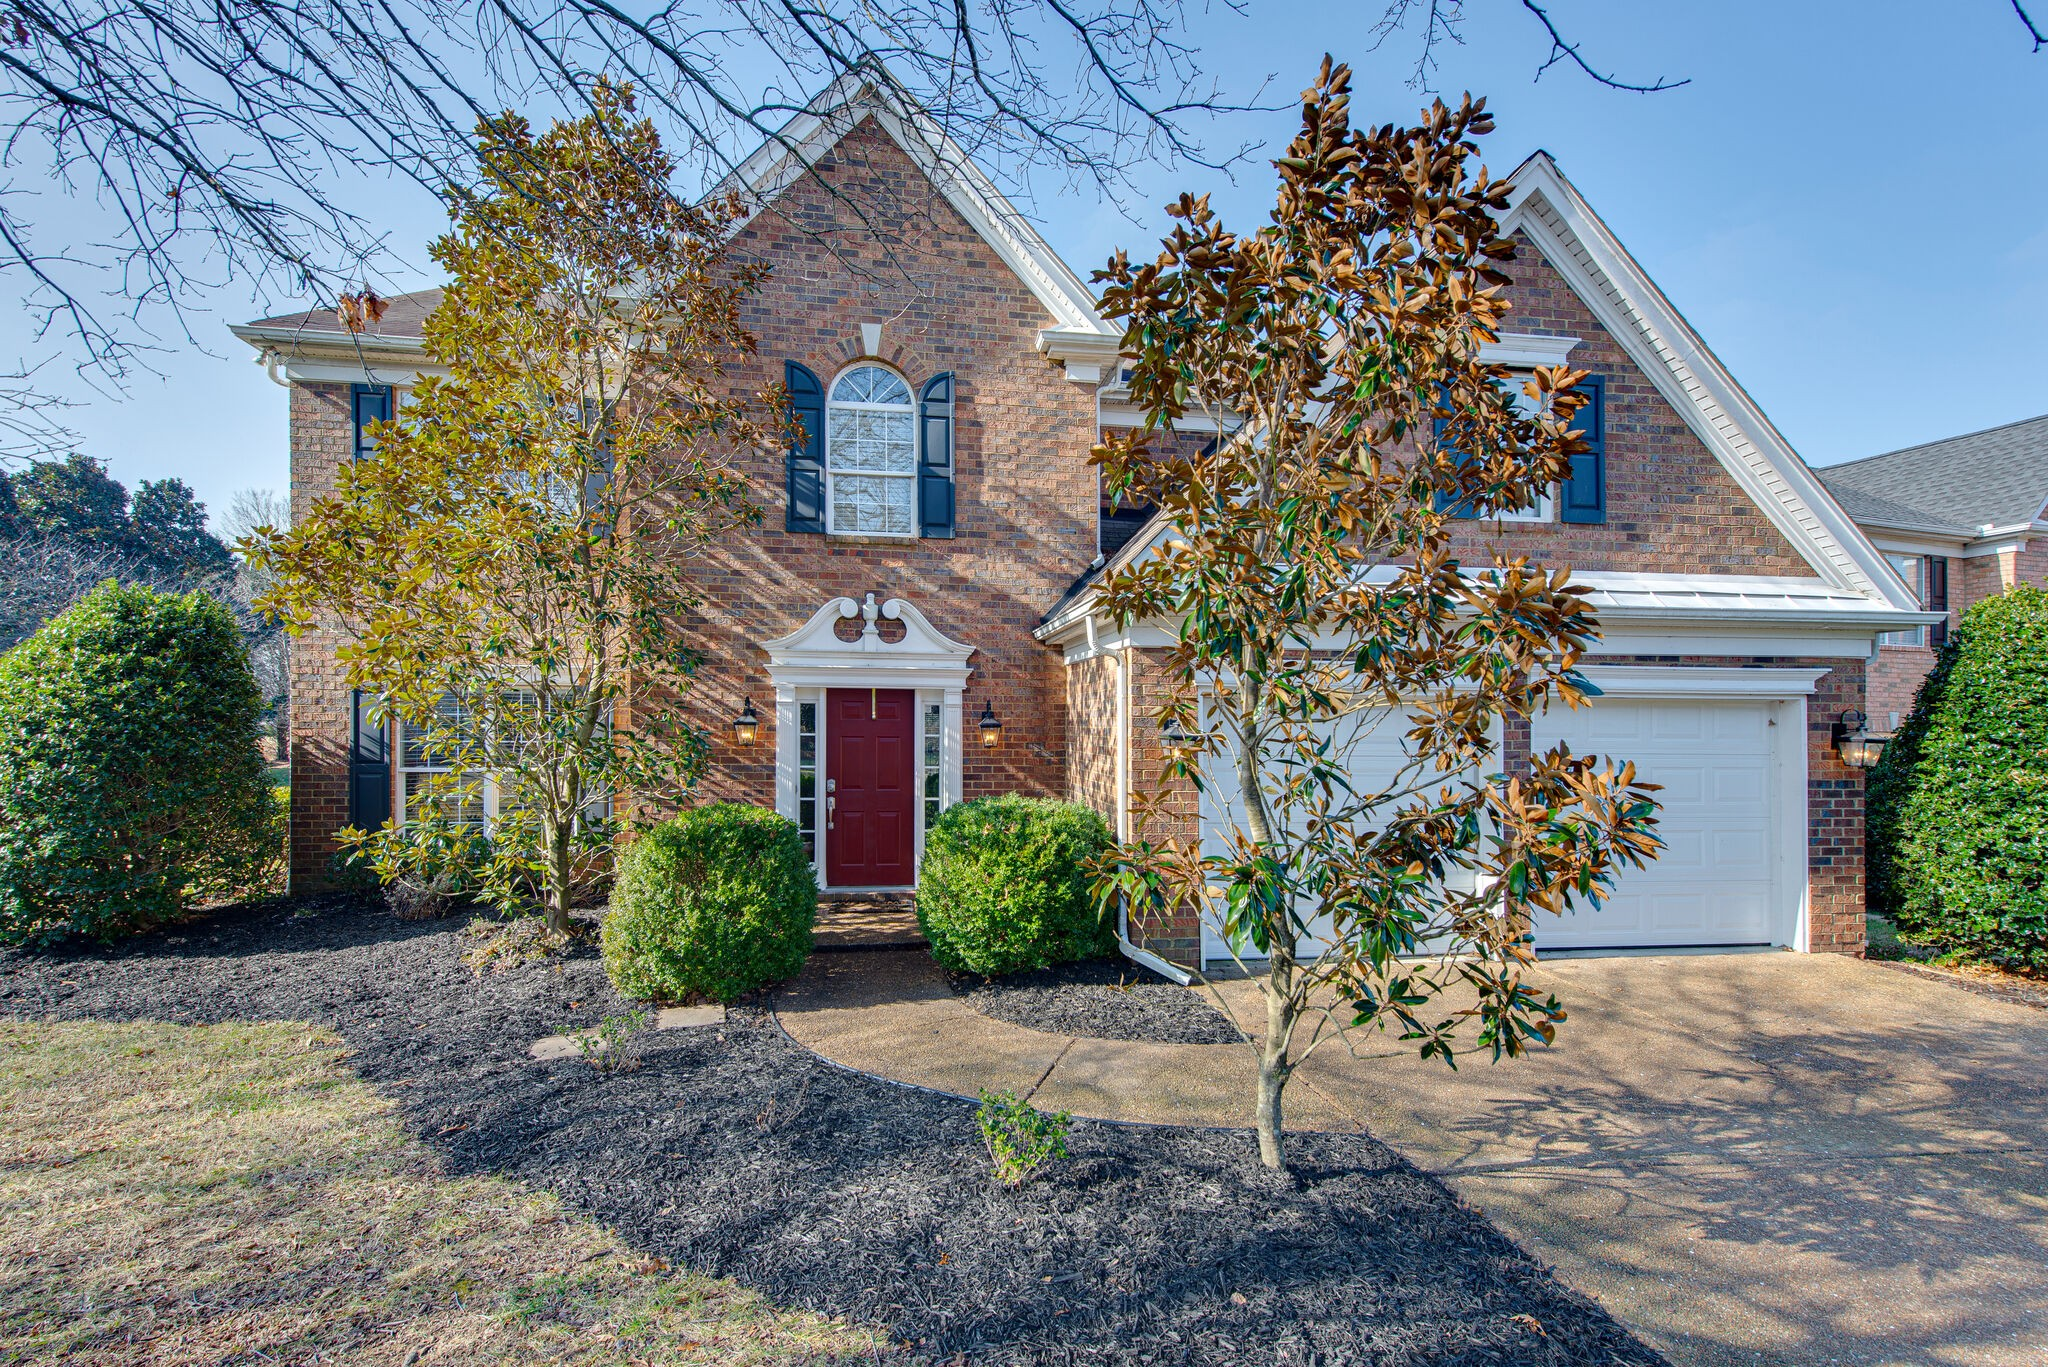 Wonderful home in coveted Sterling Oaks on fabulous lot adjoining HOA grounds. Updated kitchen counters and cabinets, beautiful tile shower with glass door in master bath, new gas water heater. Terrific location convenient to Brentwood, Nippers Corner, and Nashville hot spots. OPEN HOUSE SAT. 12-2PM.HIGHEST AND BEST OFFERS DUE 4PM 1-16.